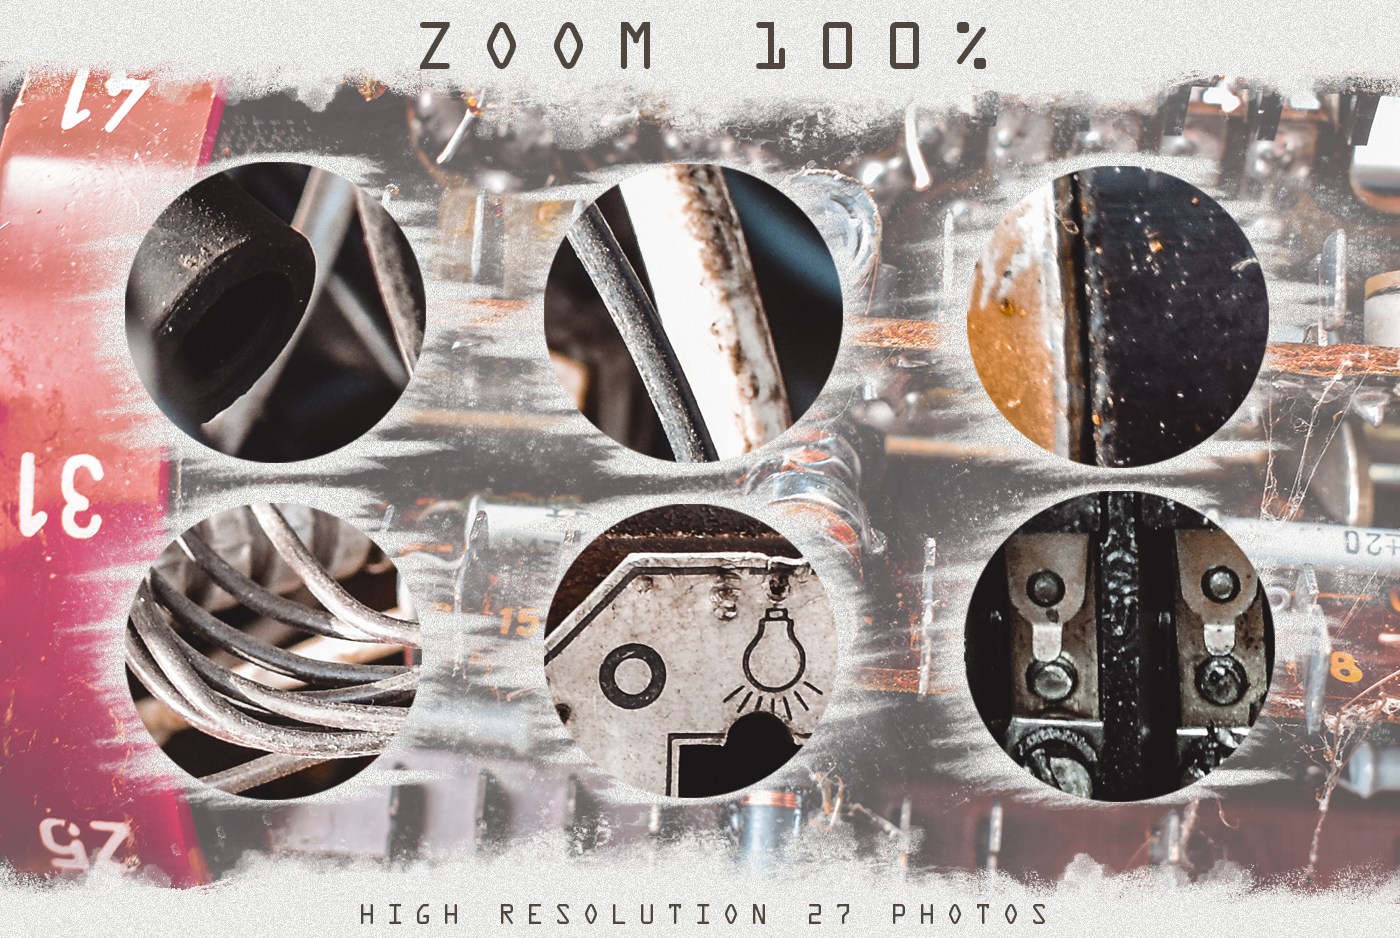 Grunge Steampunk Textures Overlays background pack digital example image 2